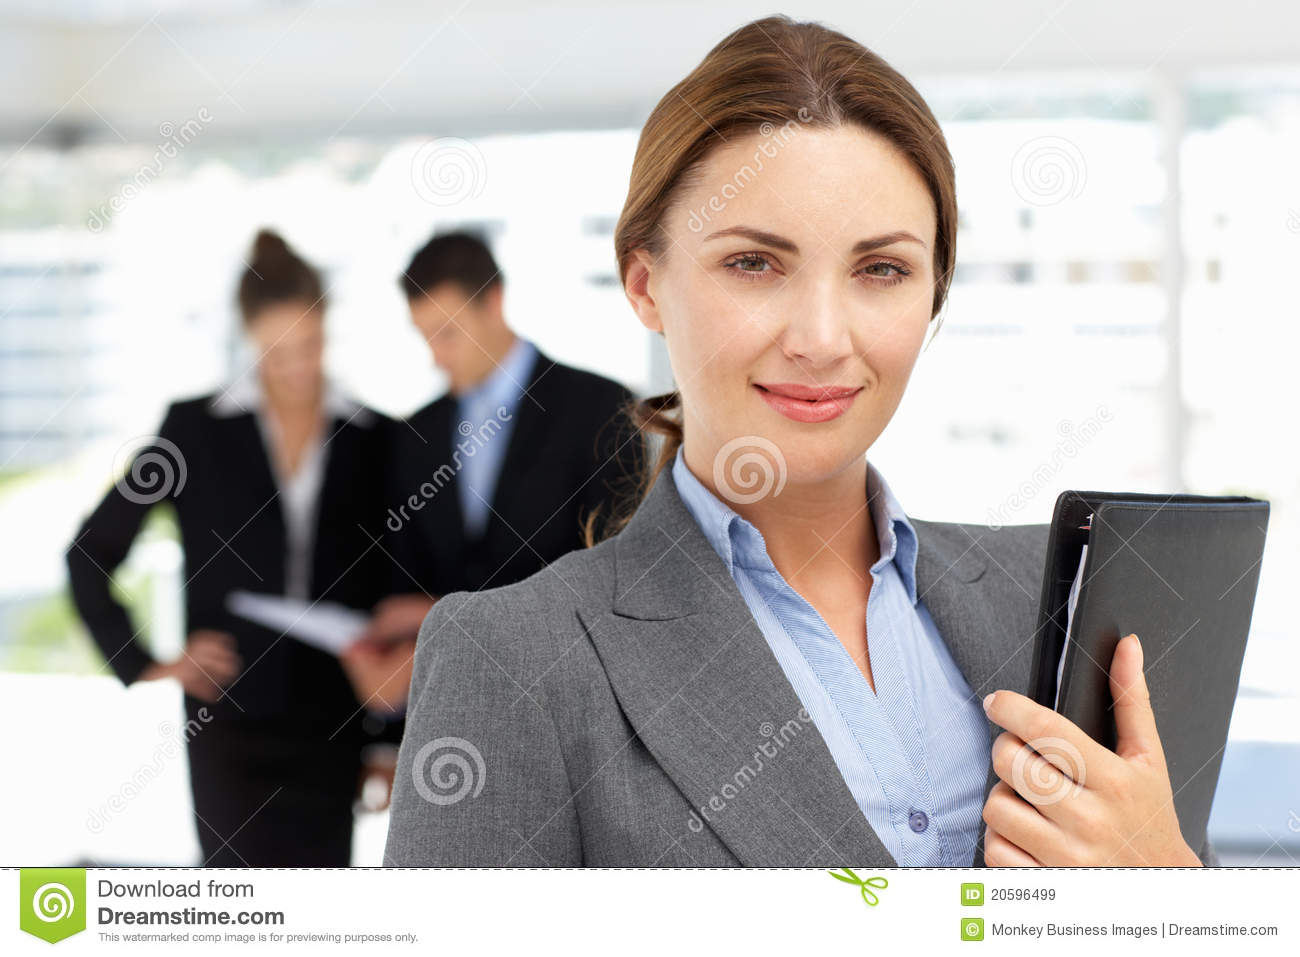 proud-business-woman-office-20596499.jpg